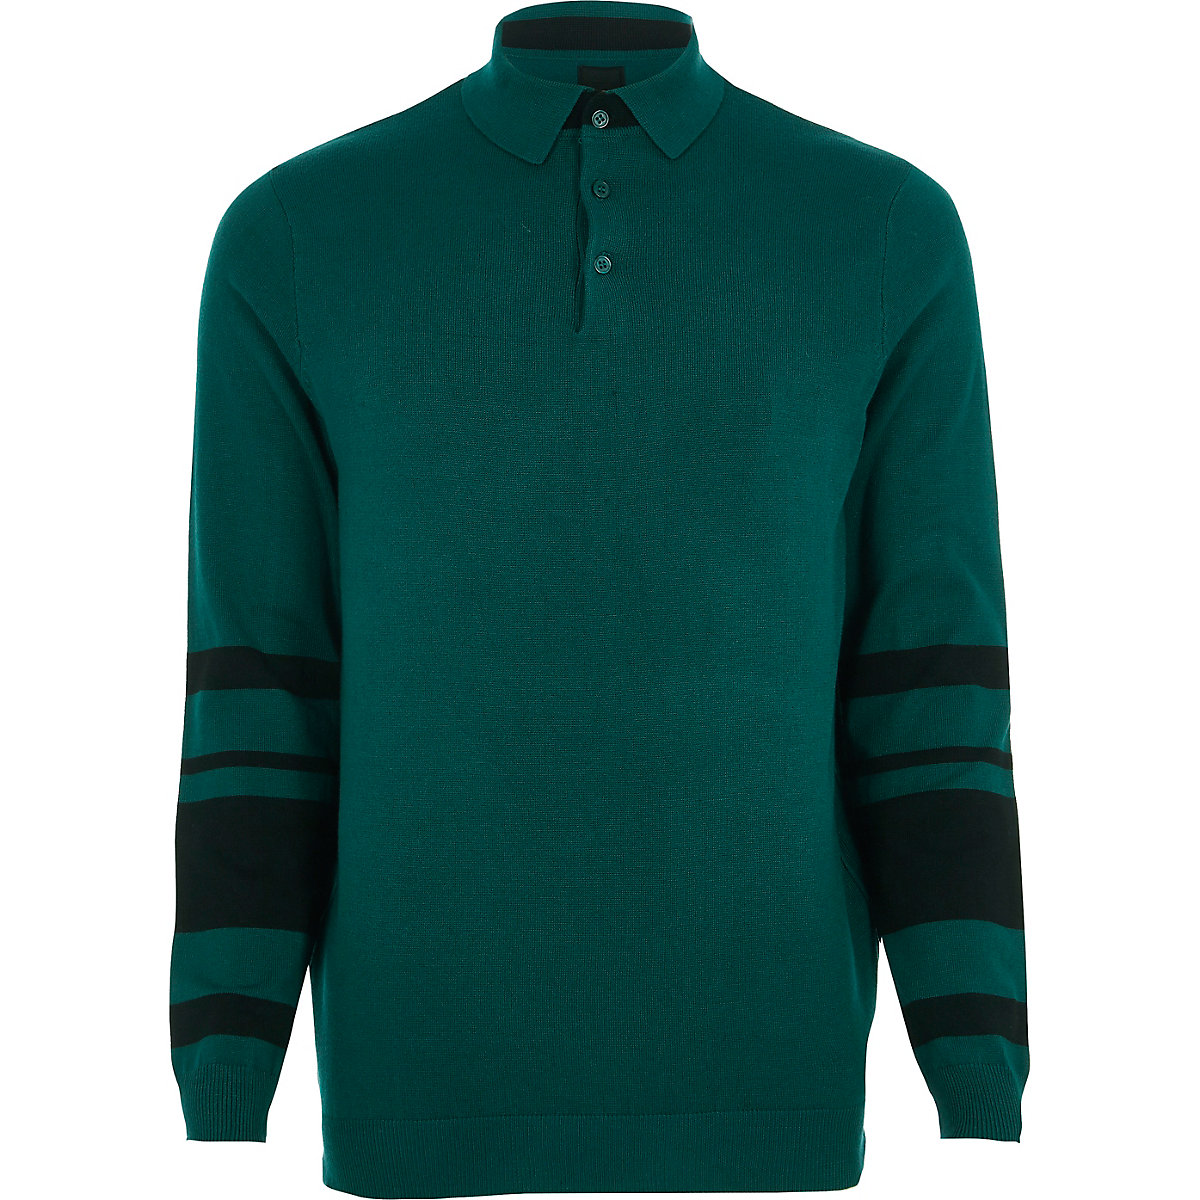 Green knit block sleeve slim fit polo shirt